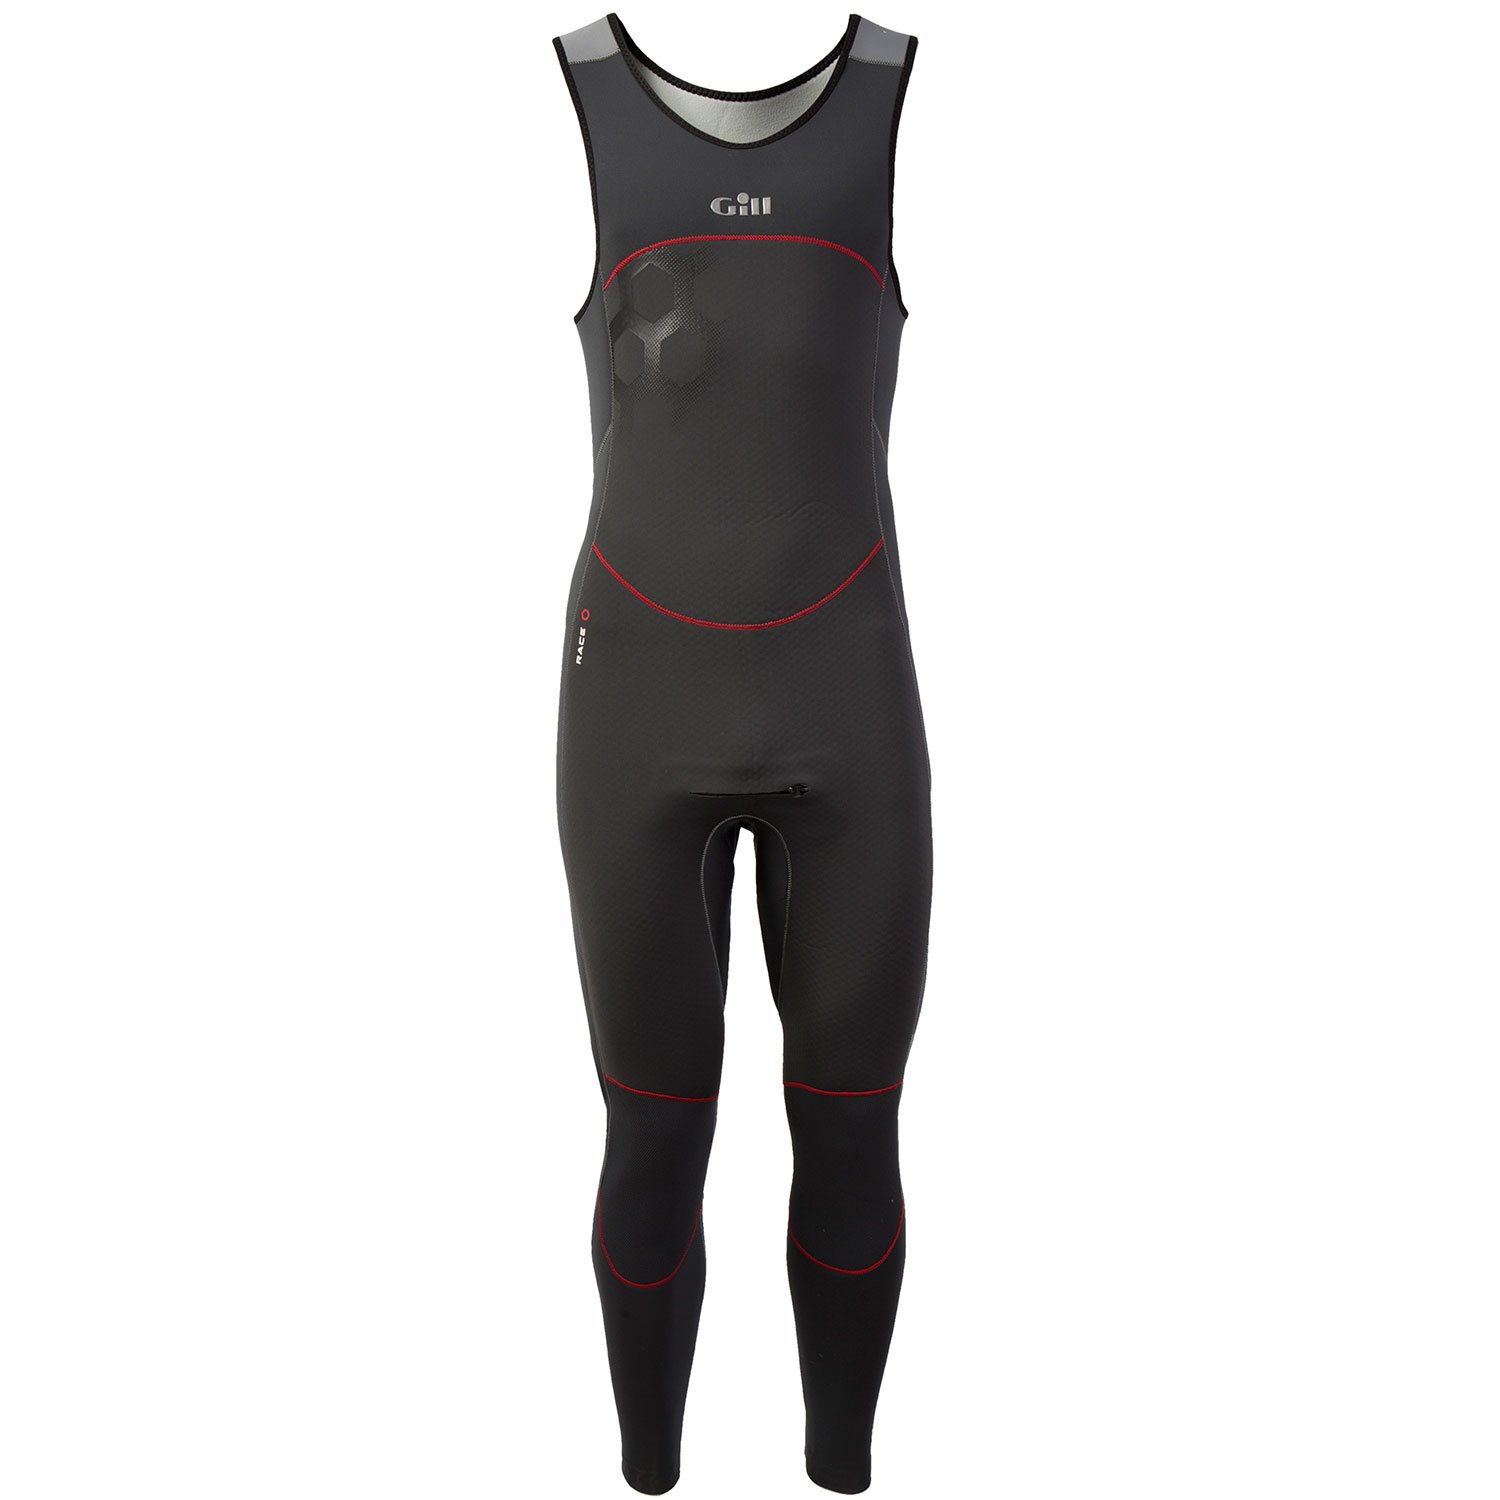 Gill Race Firecell Wetsuit Skiff Suit - Graphite XS